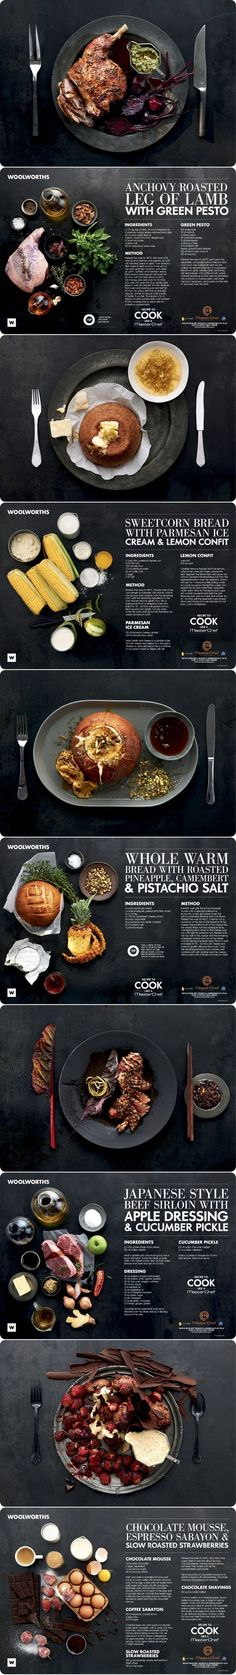 Web food design, Clear and neat layout. Easy on the eye Webdesign Inspiration, Layout Inspiration, Graphic Design Inspiration, Food Web Design, Clean Web Design, Editorial Design, Layout Design, Design Design, Store Design